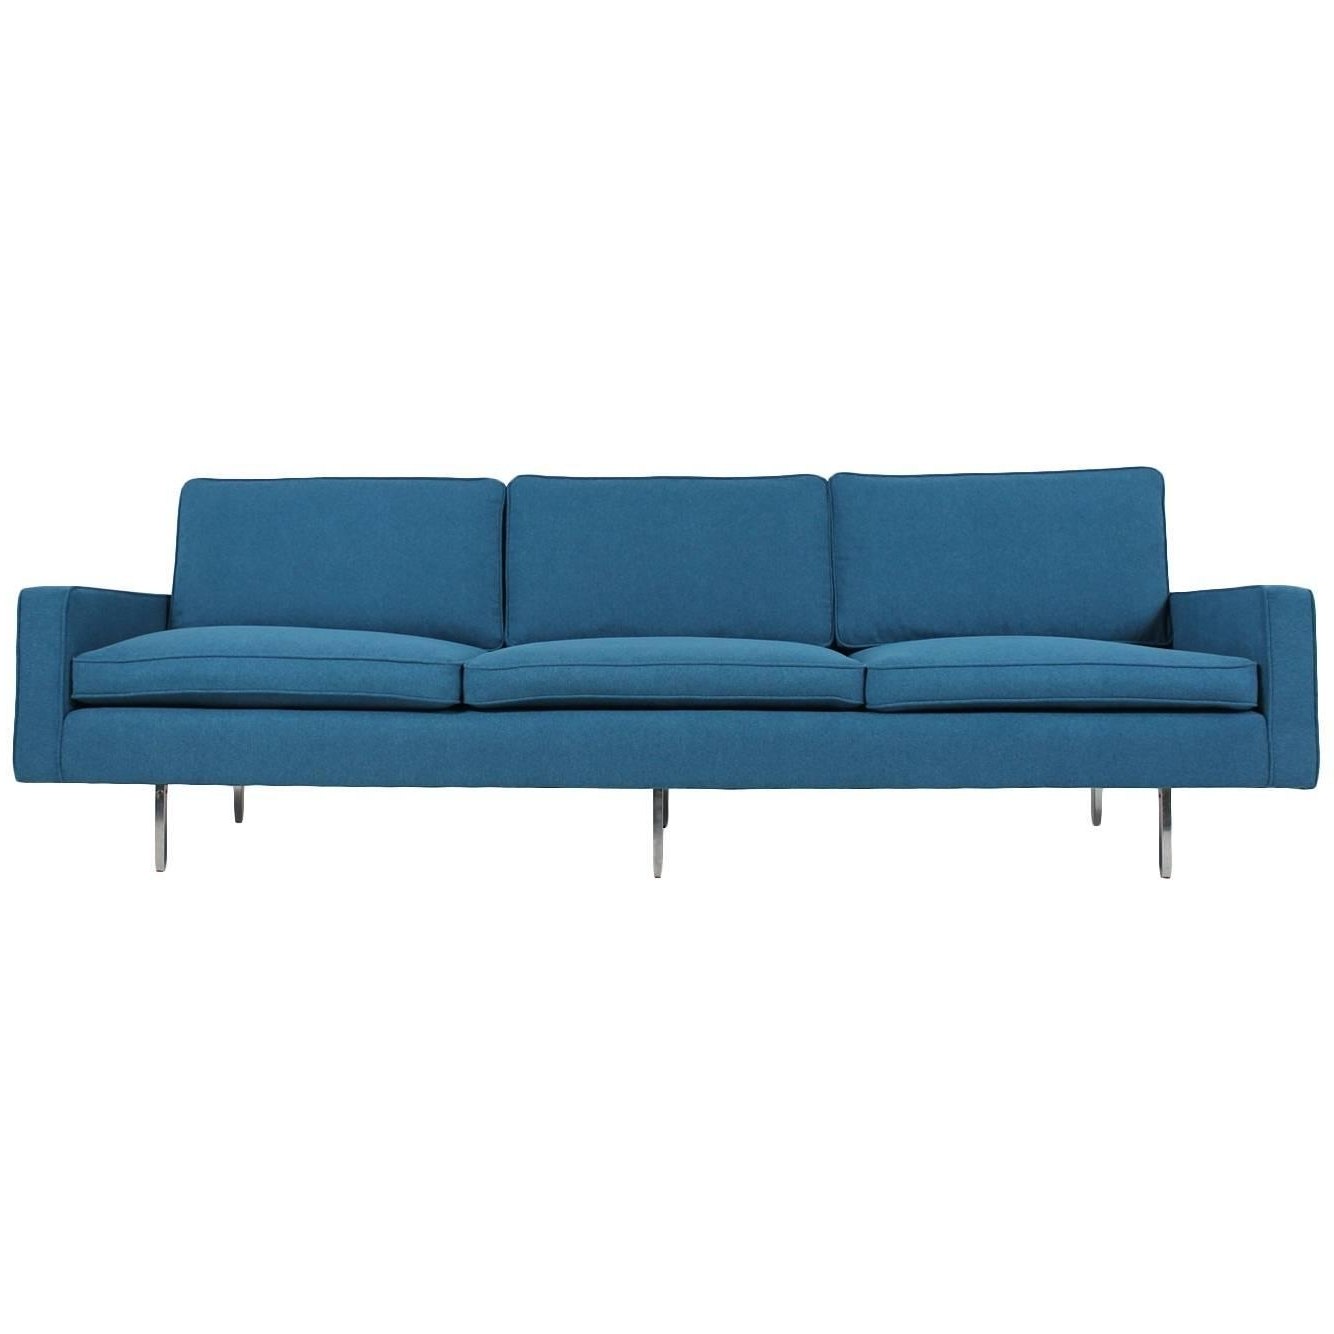 Most Recently Released Florence Knoll Wood Legs Sofas Pertaining To Florence Knoll Sofas – 61 For Sale At 1Stdibs (View 2 of 15)